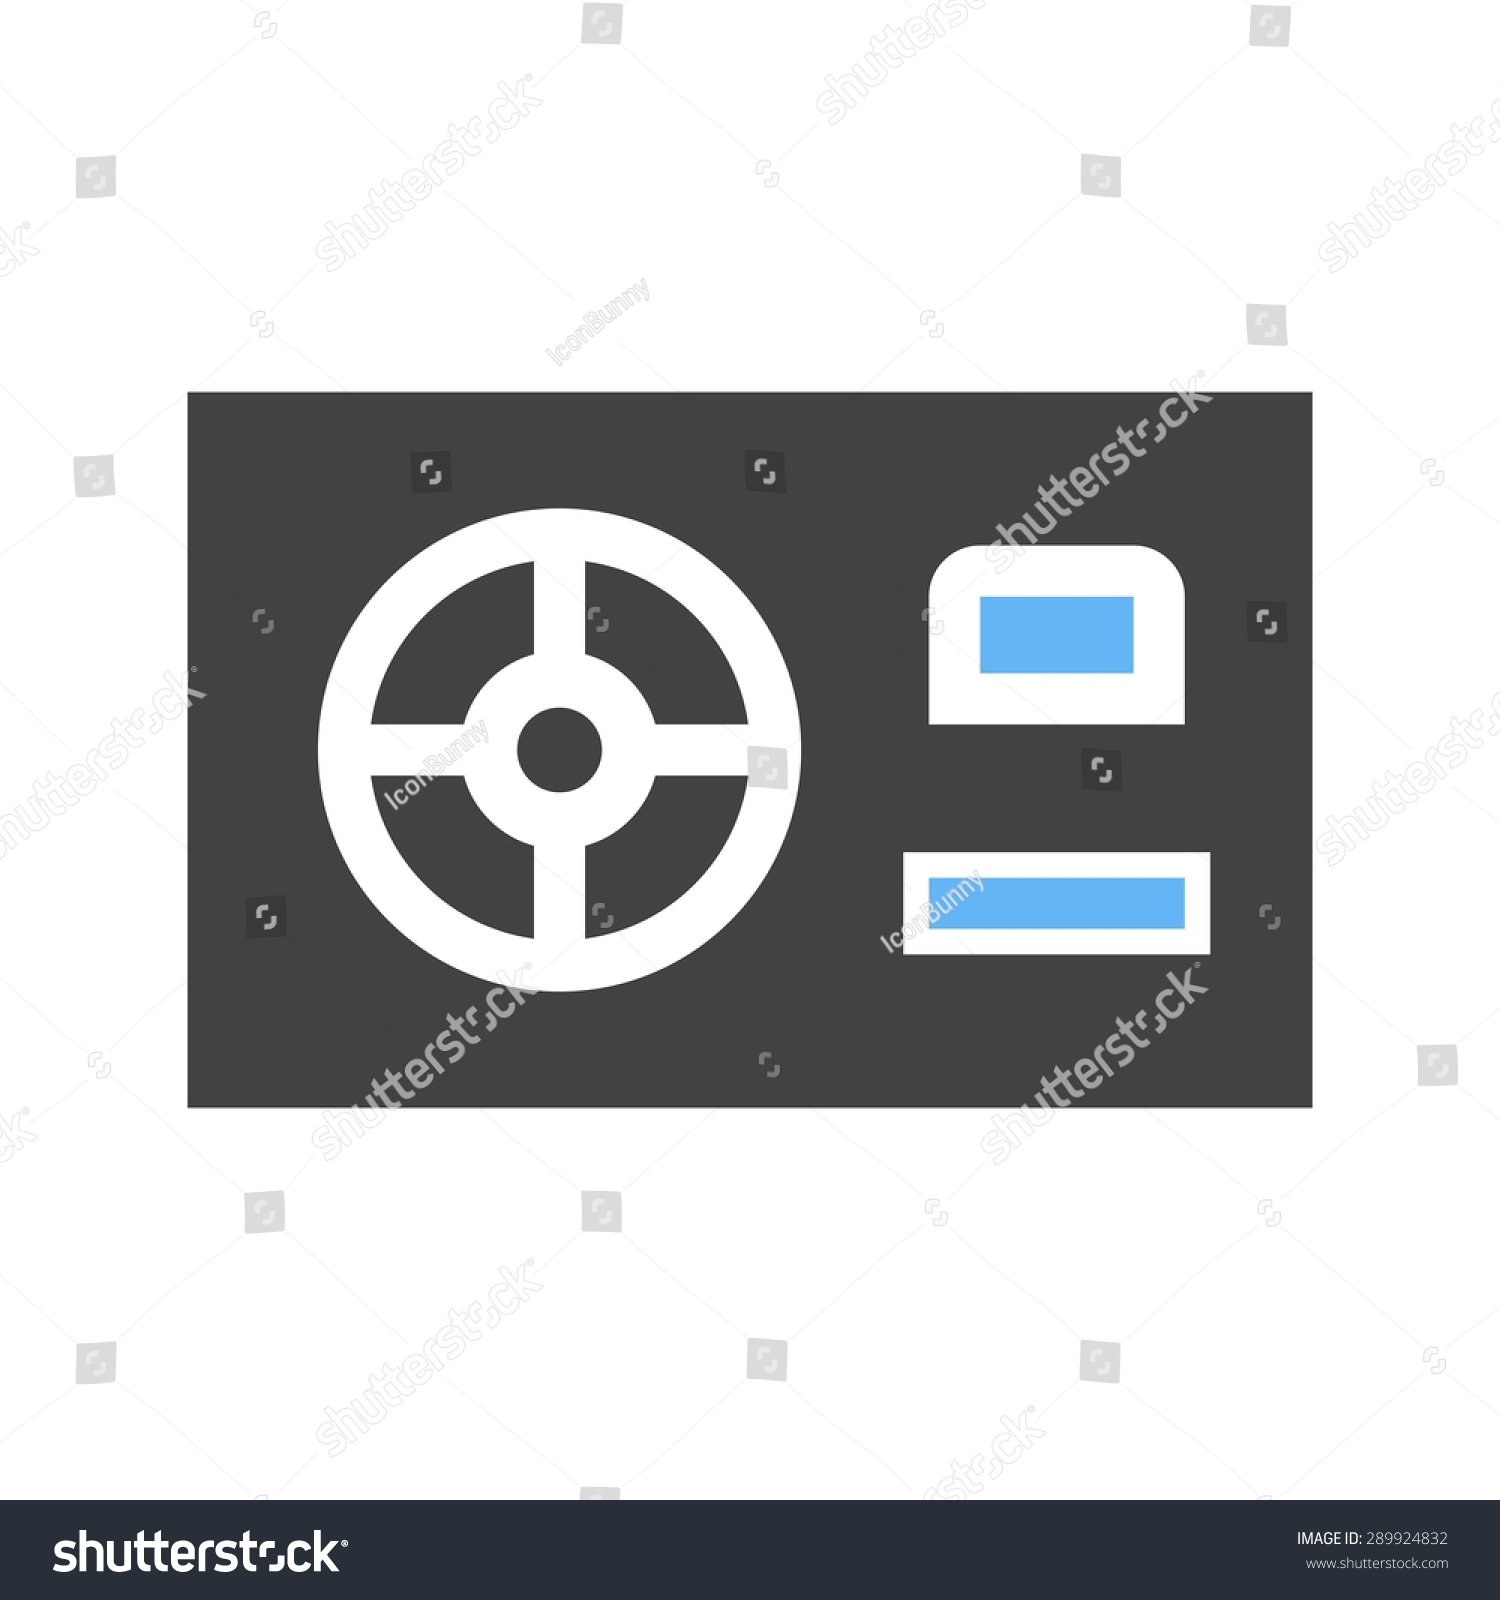 Power supply hdmi computer icon vector stock vector 289924832 power supply hdmi computer icon vector image can also be used for computer biocorpaavc Choice Image